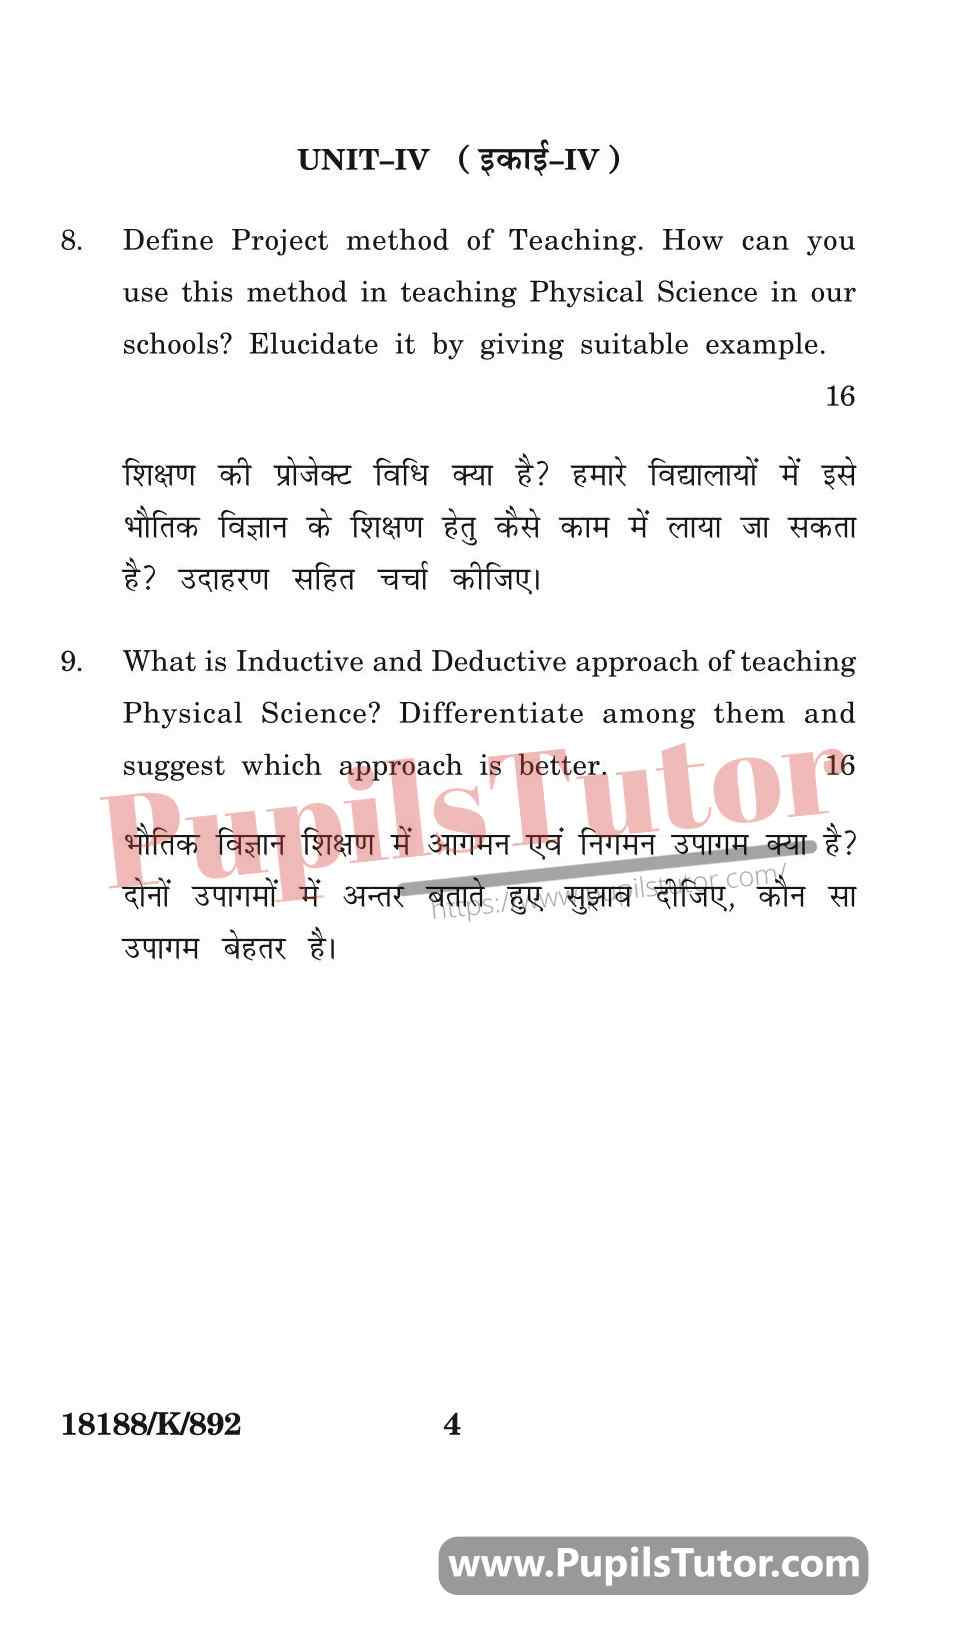 KUK (Kurukshetra University, Haryana) Pedagogy Of Physical Science Question Paper 2020 For B.Ed 1st And 2nd Year And All The 4 Semesters In English And Hindi Medium Free Download PDF - Page 4 - pupilstutor